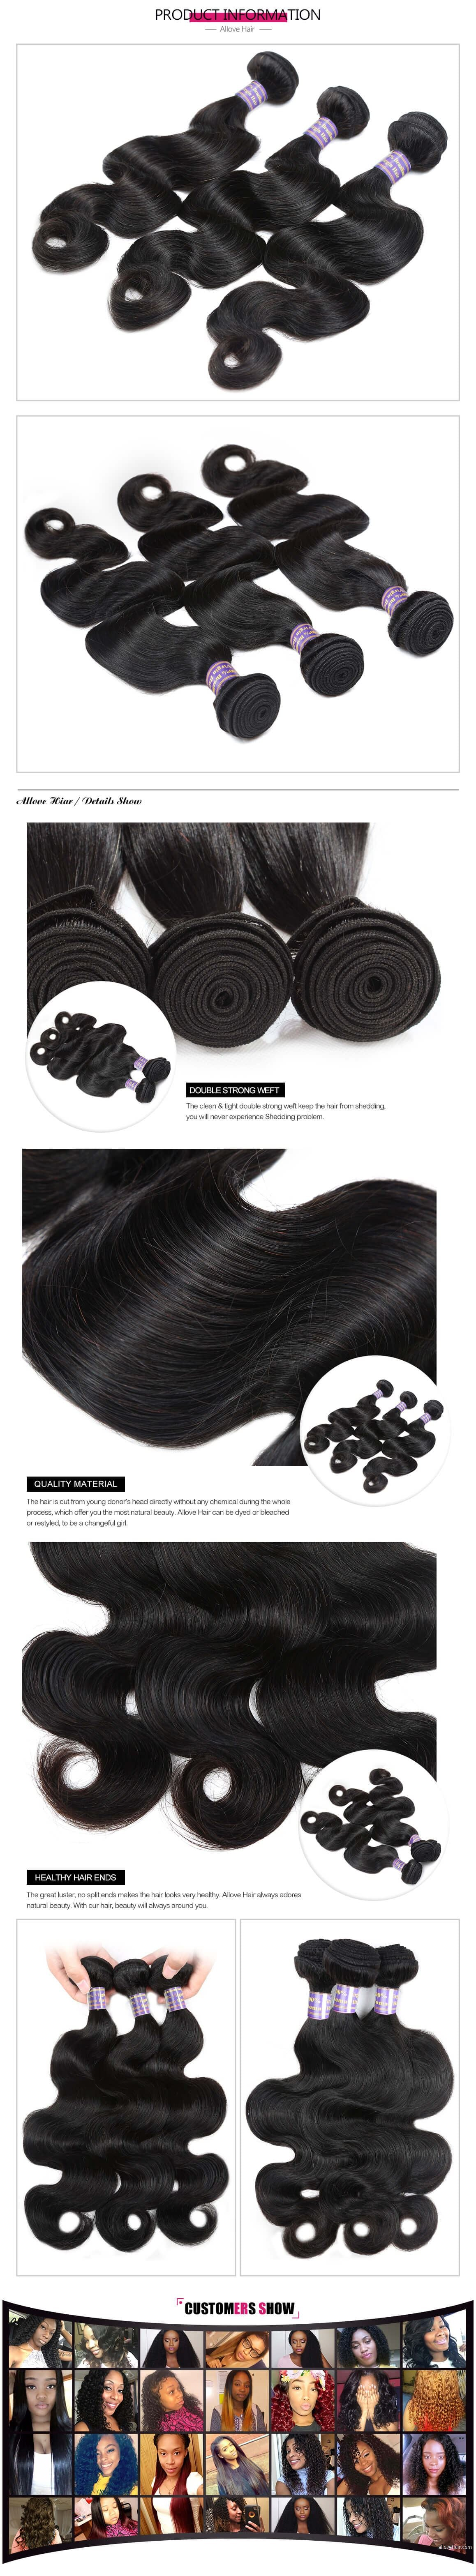 Buy best brazilian virgin human hair weave with reasonable price on ms virgin hair